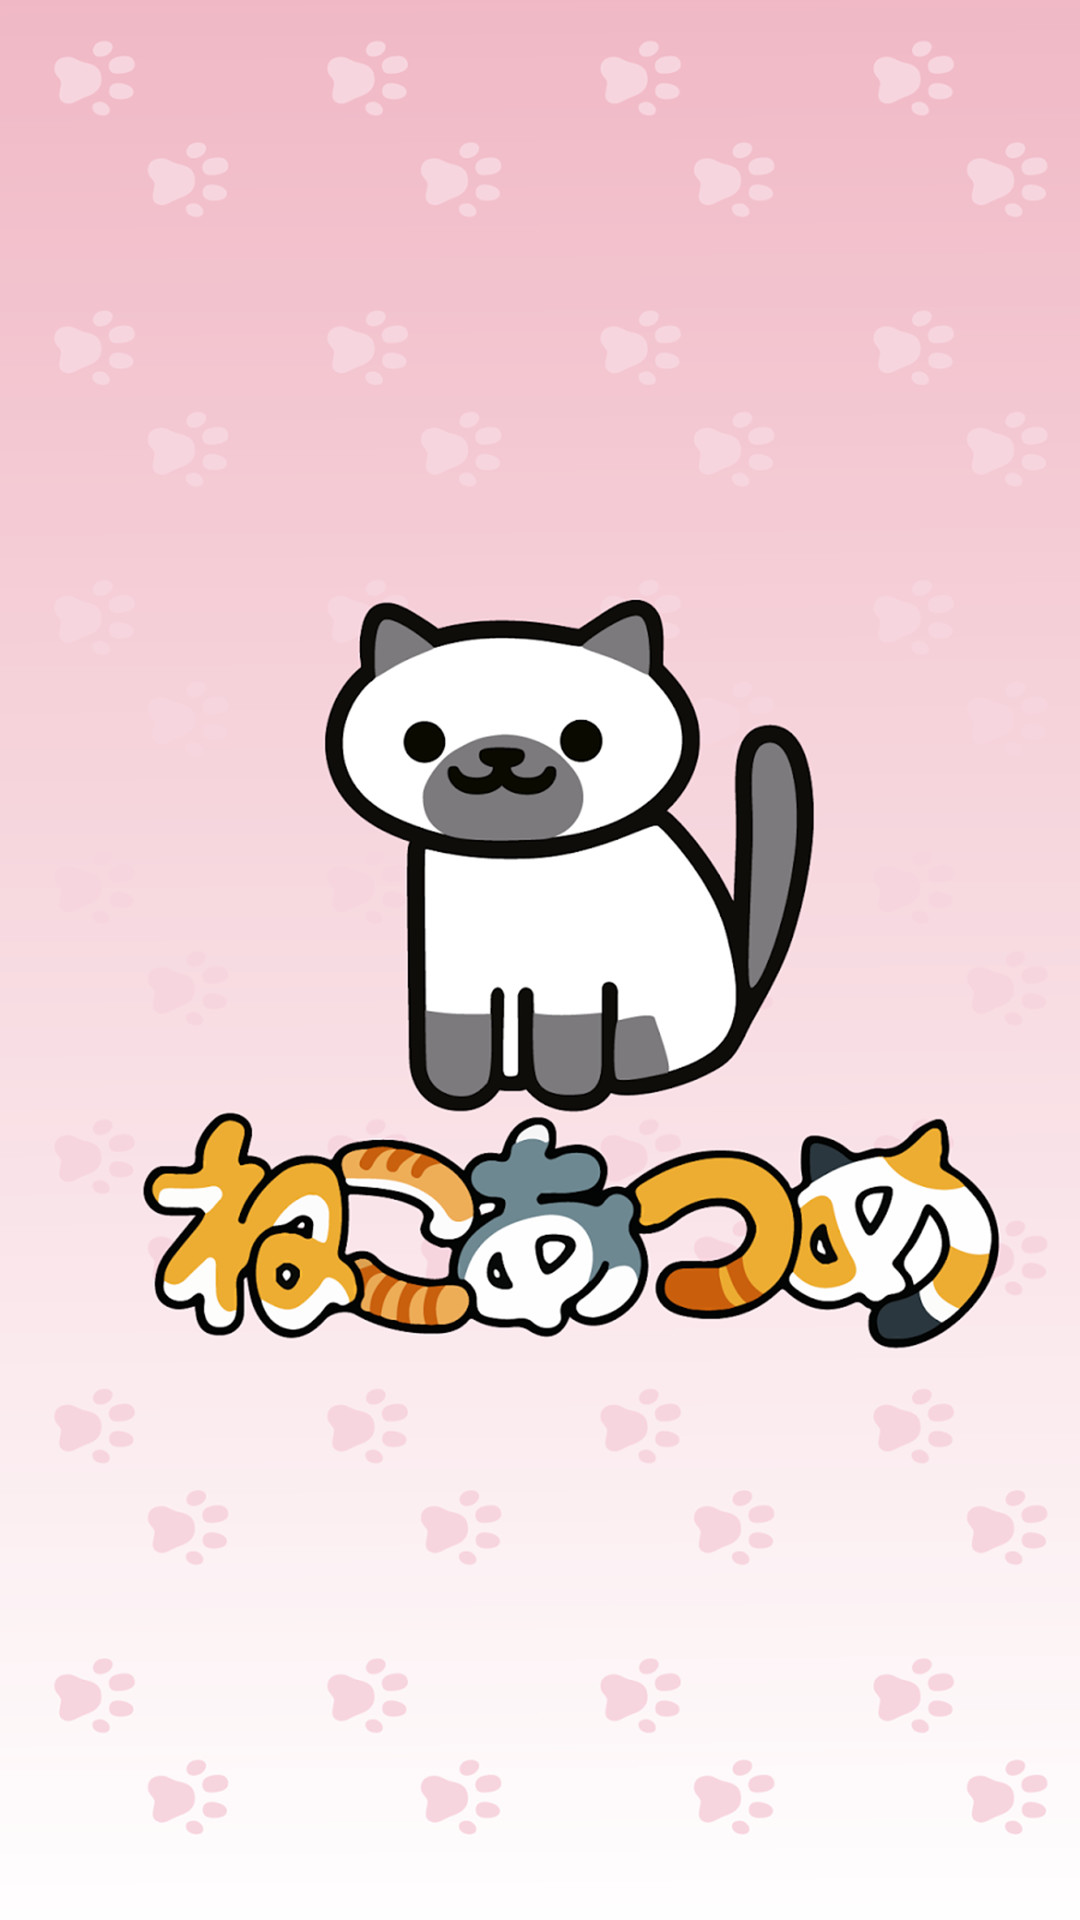 1080x1920 Tap to see more Neko Atsume the cat wallpapers, backgrounds,